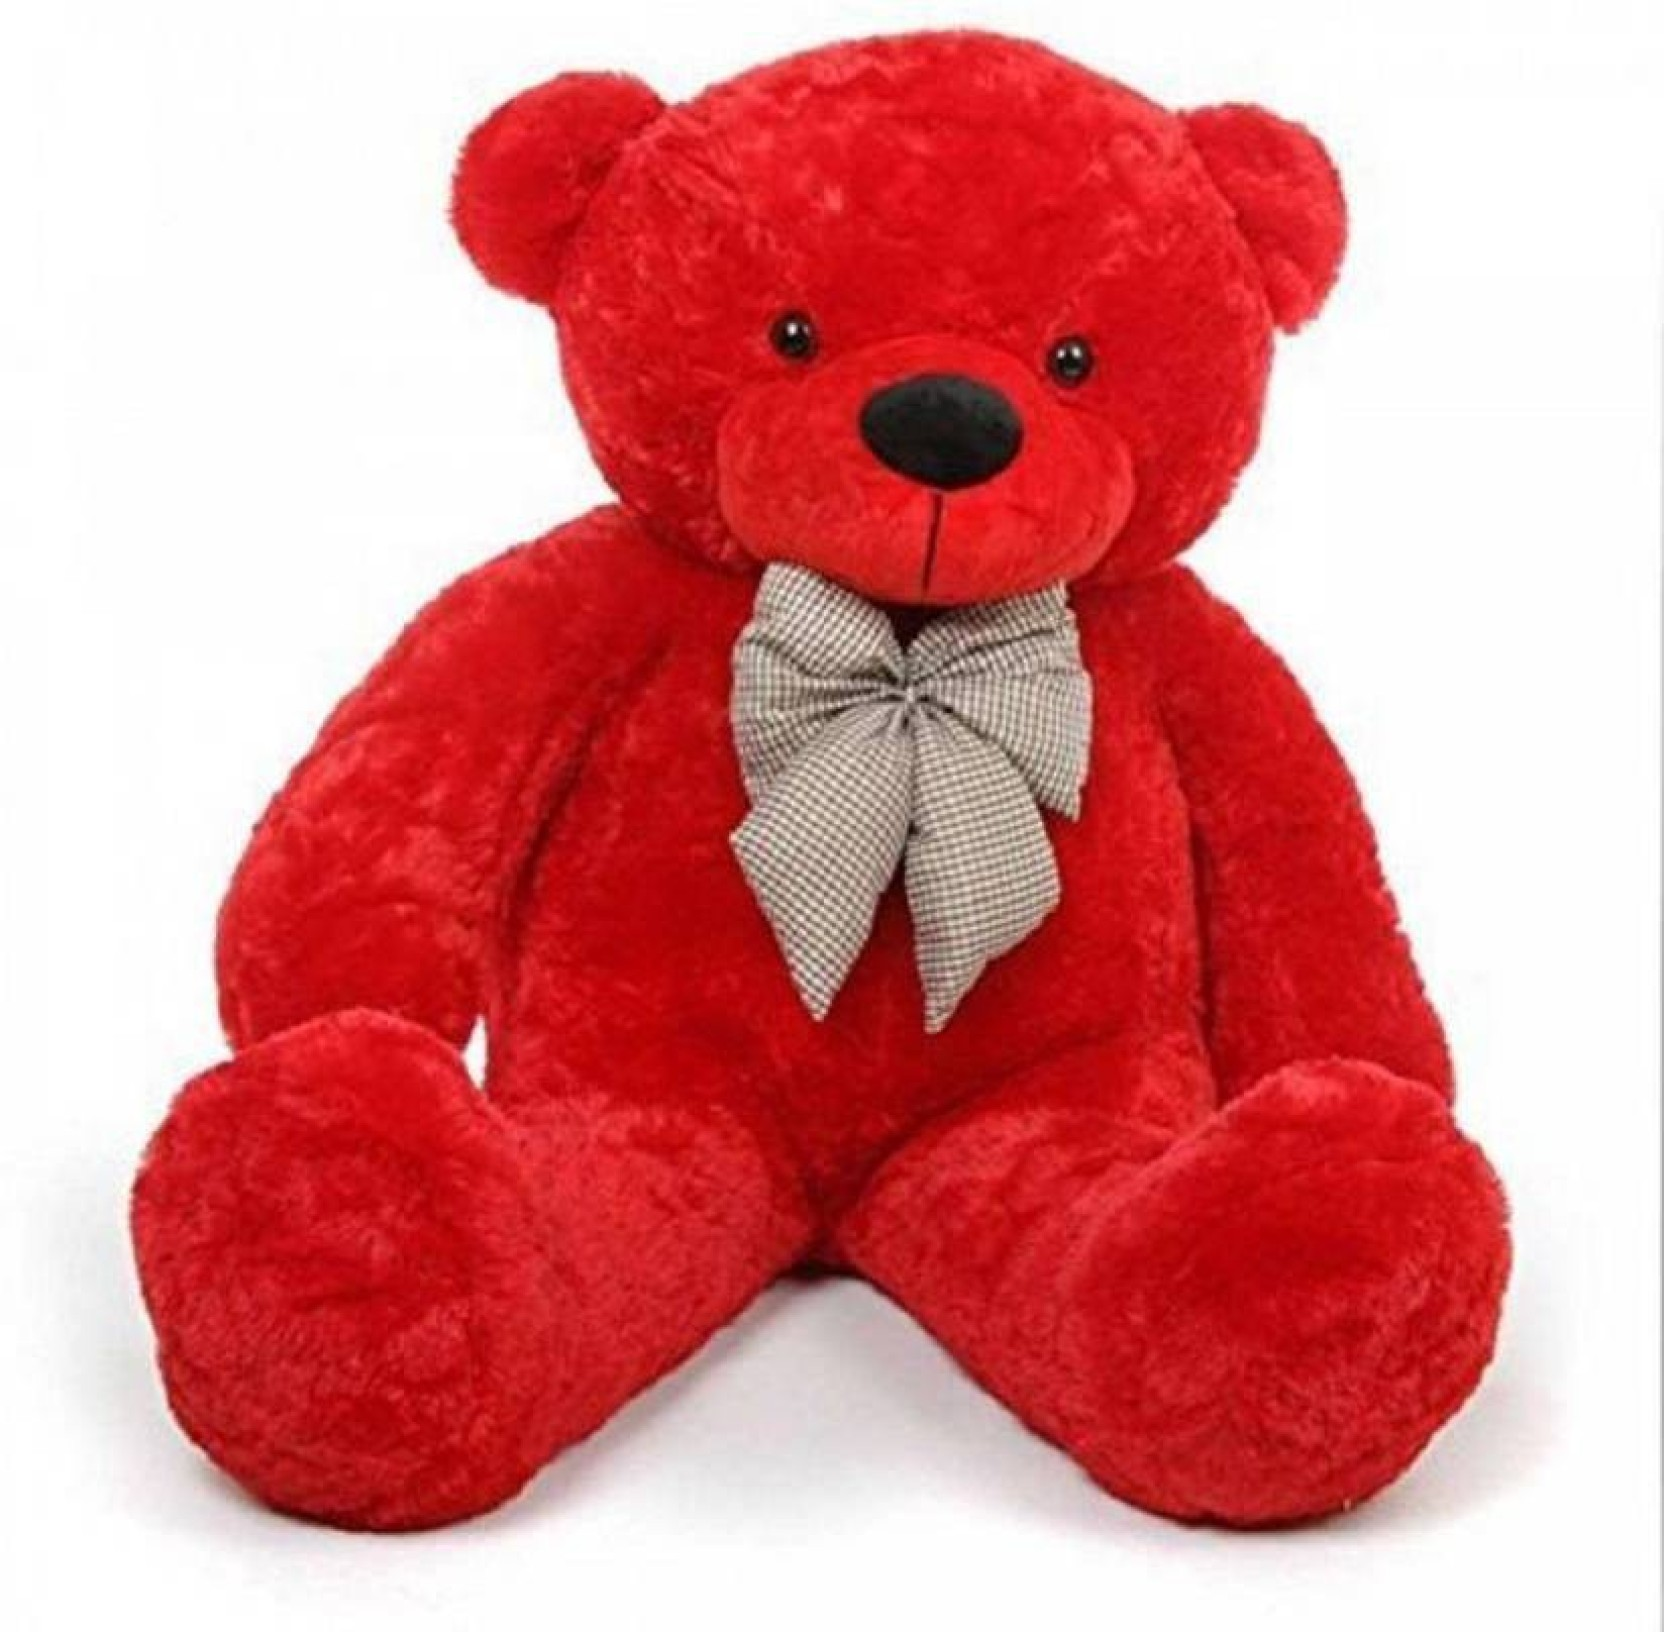 Ziraat Birthday Gift A Teddy Bear Red Color 3 Feet For Your Love